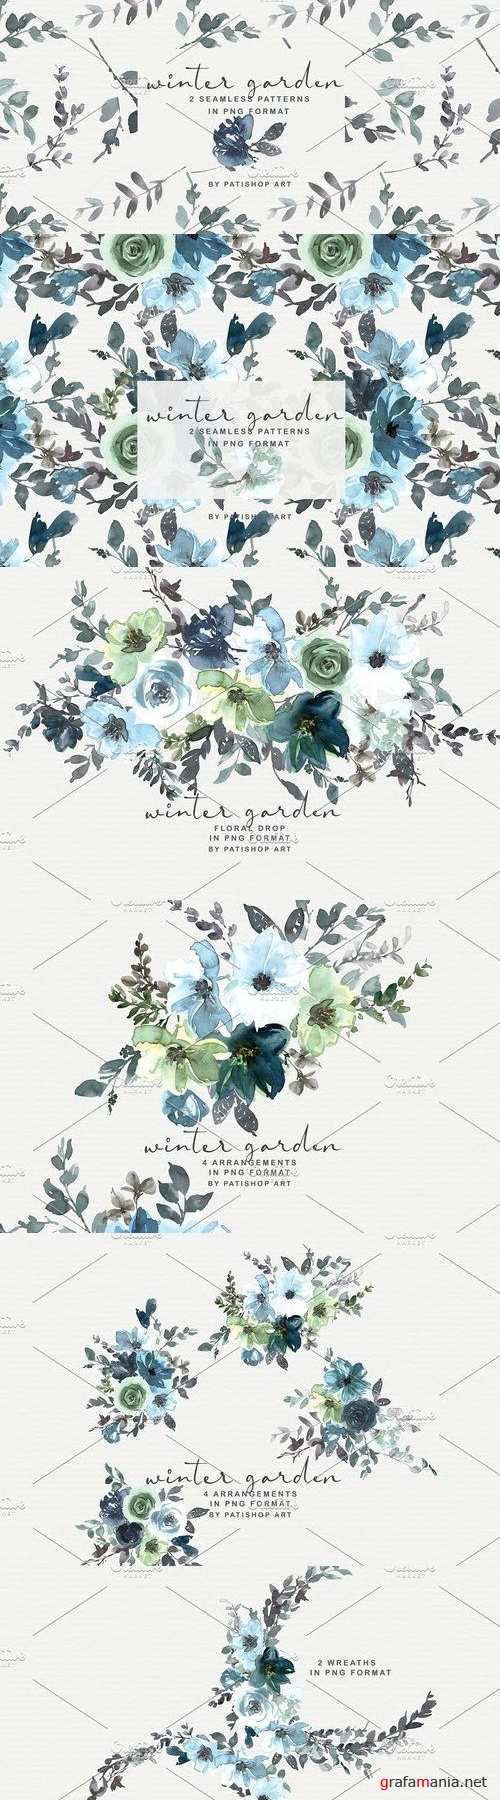 Icy Blue Watercolor Floral Clipart - 4263712